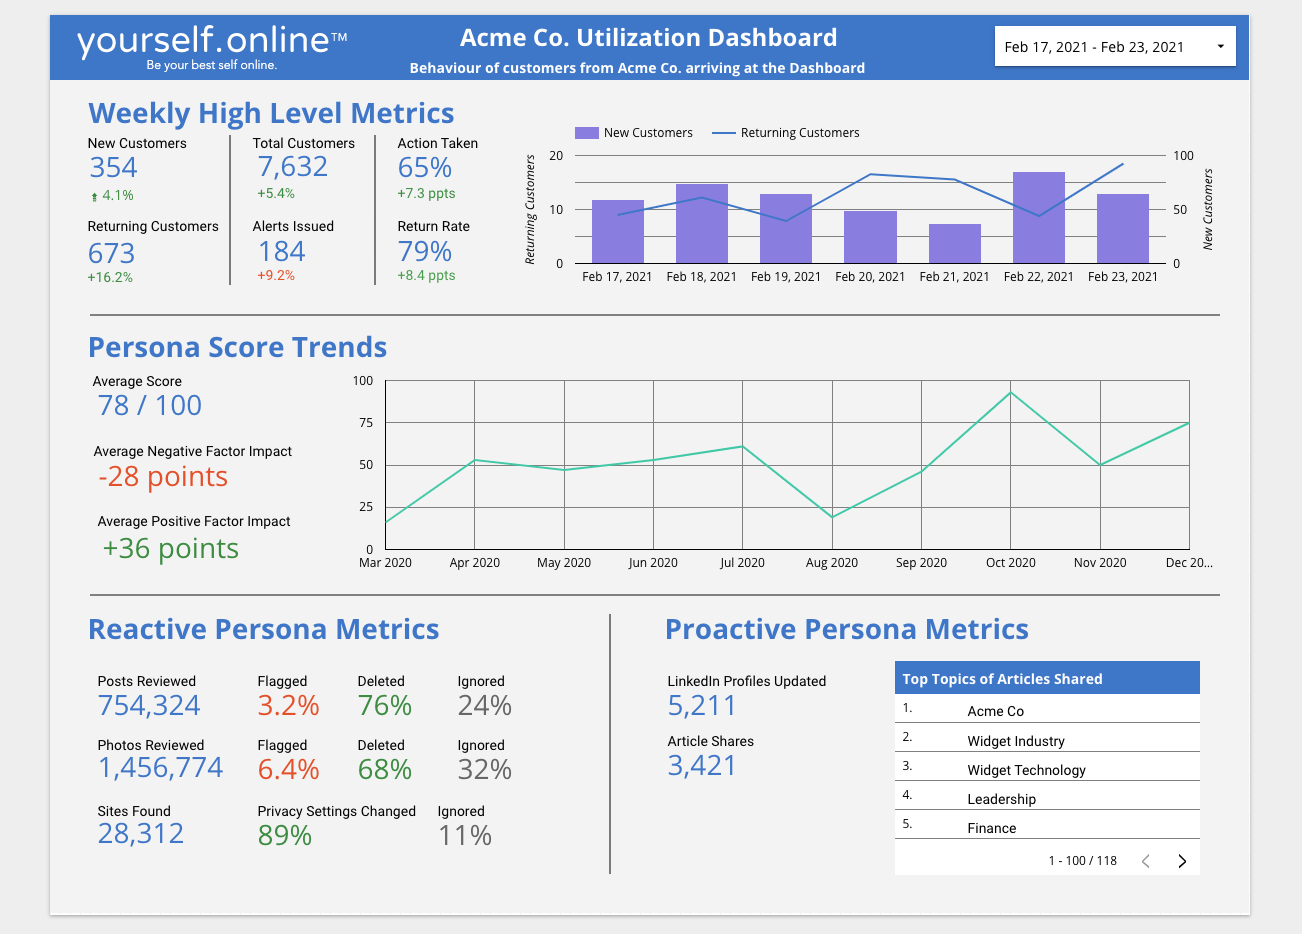 Image of a an online dashboard